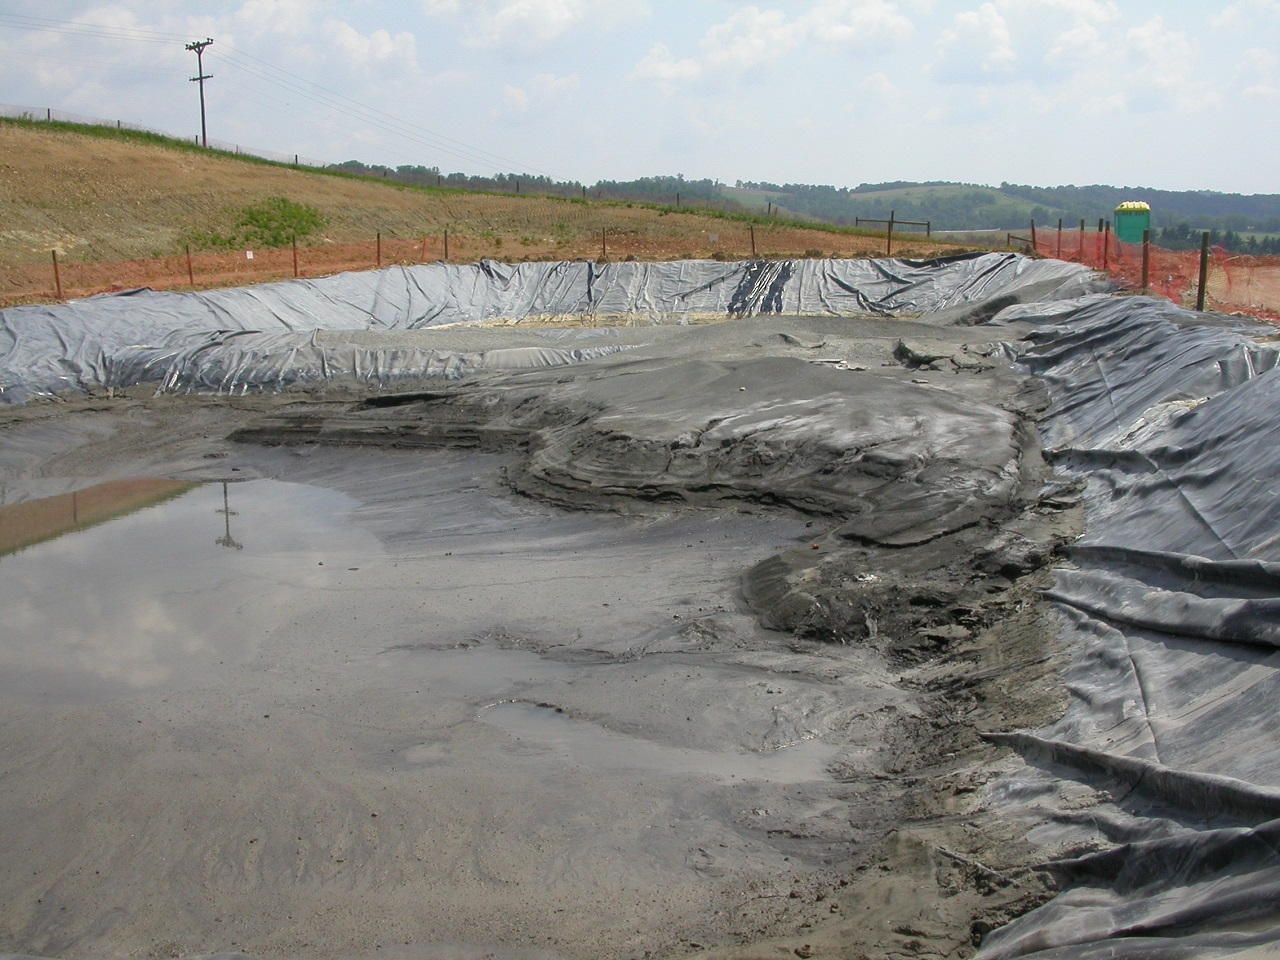 Forums on New Reports on the Health and Economic Impacts of Fracking in Pennsylvania24